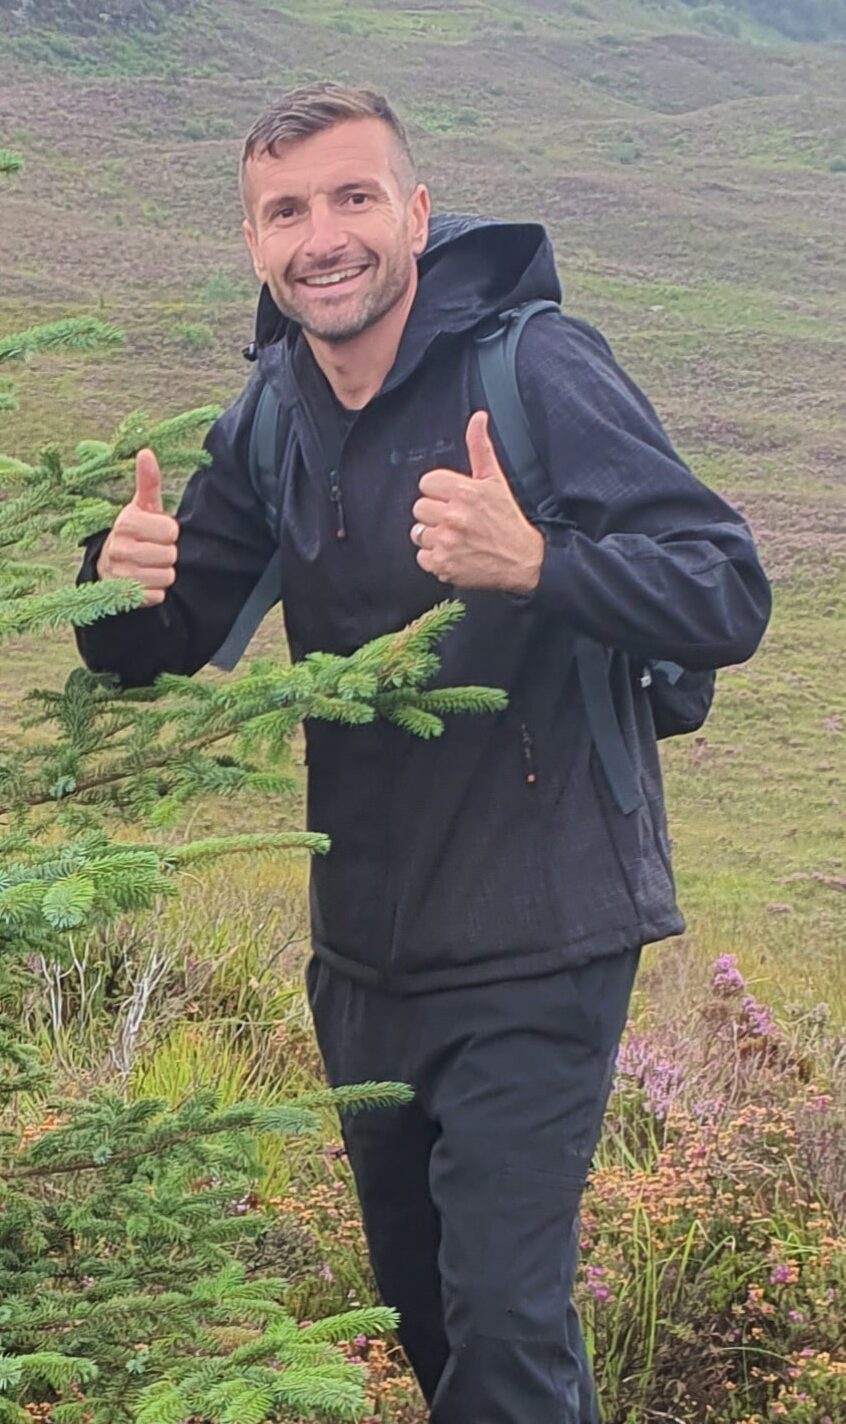 Luke with his thumbs up in the Highlands of Scotland